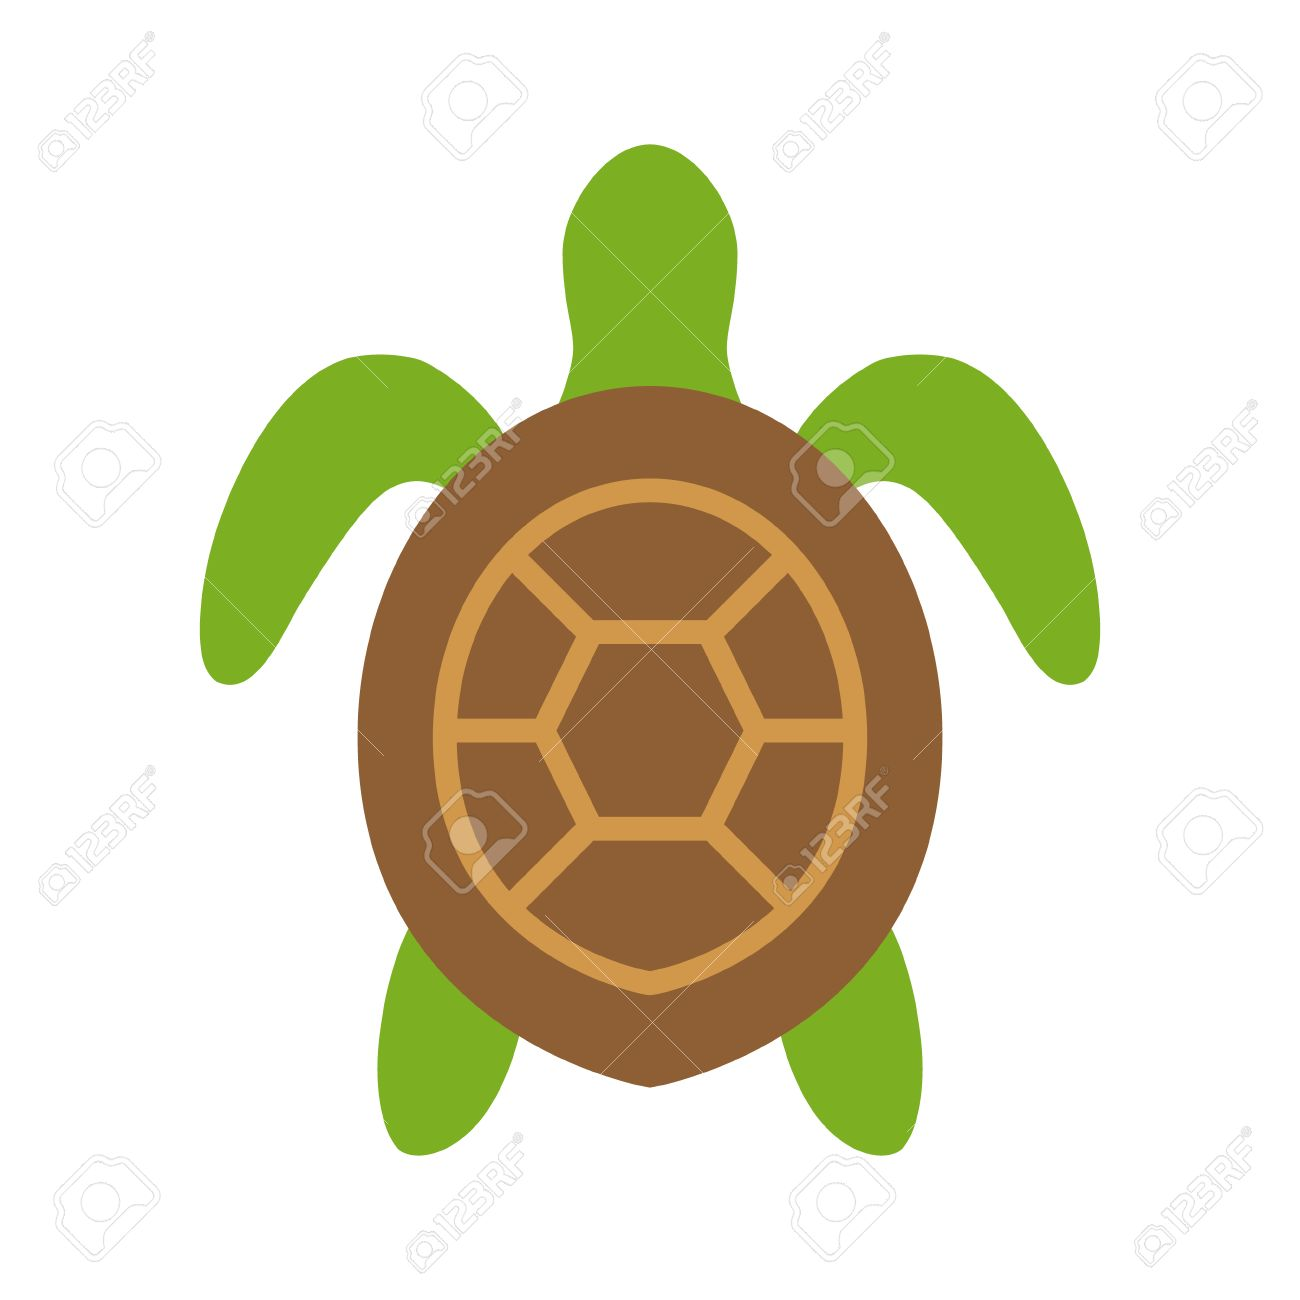 Turtle Top View Clipart.